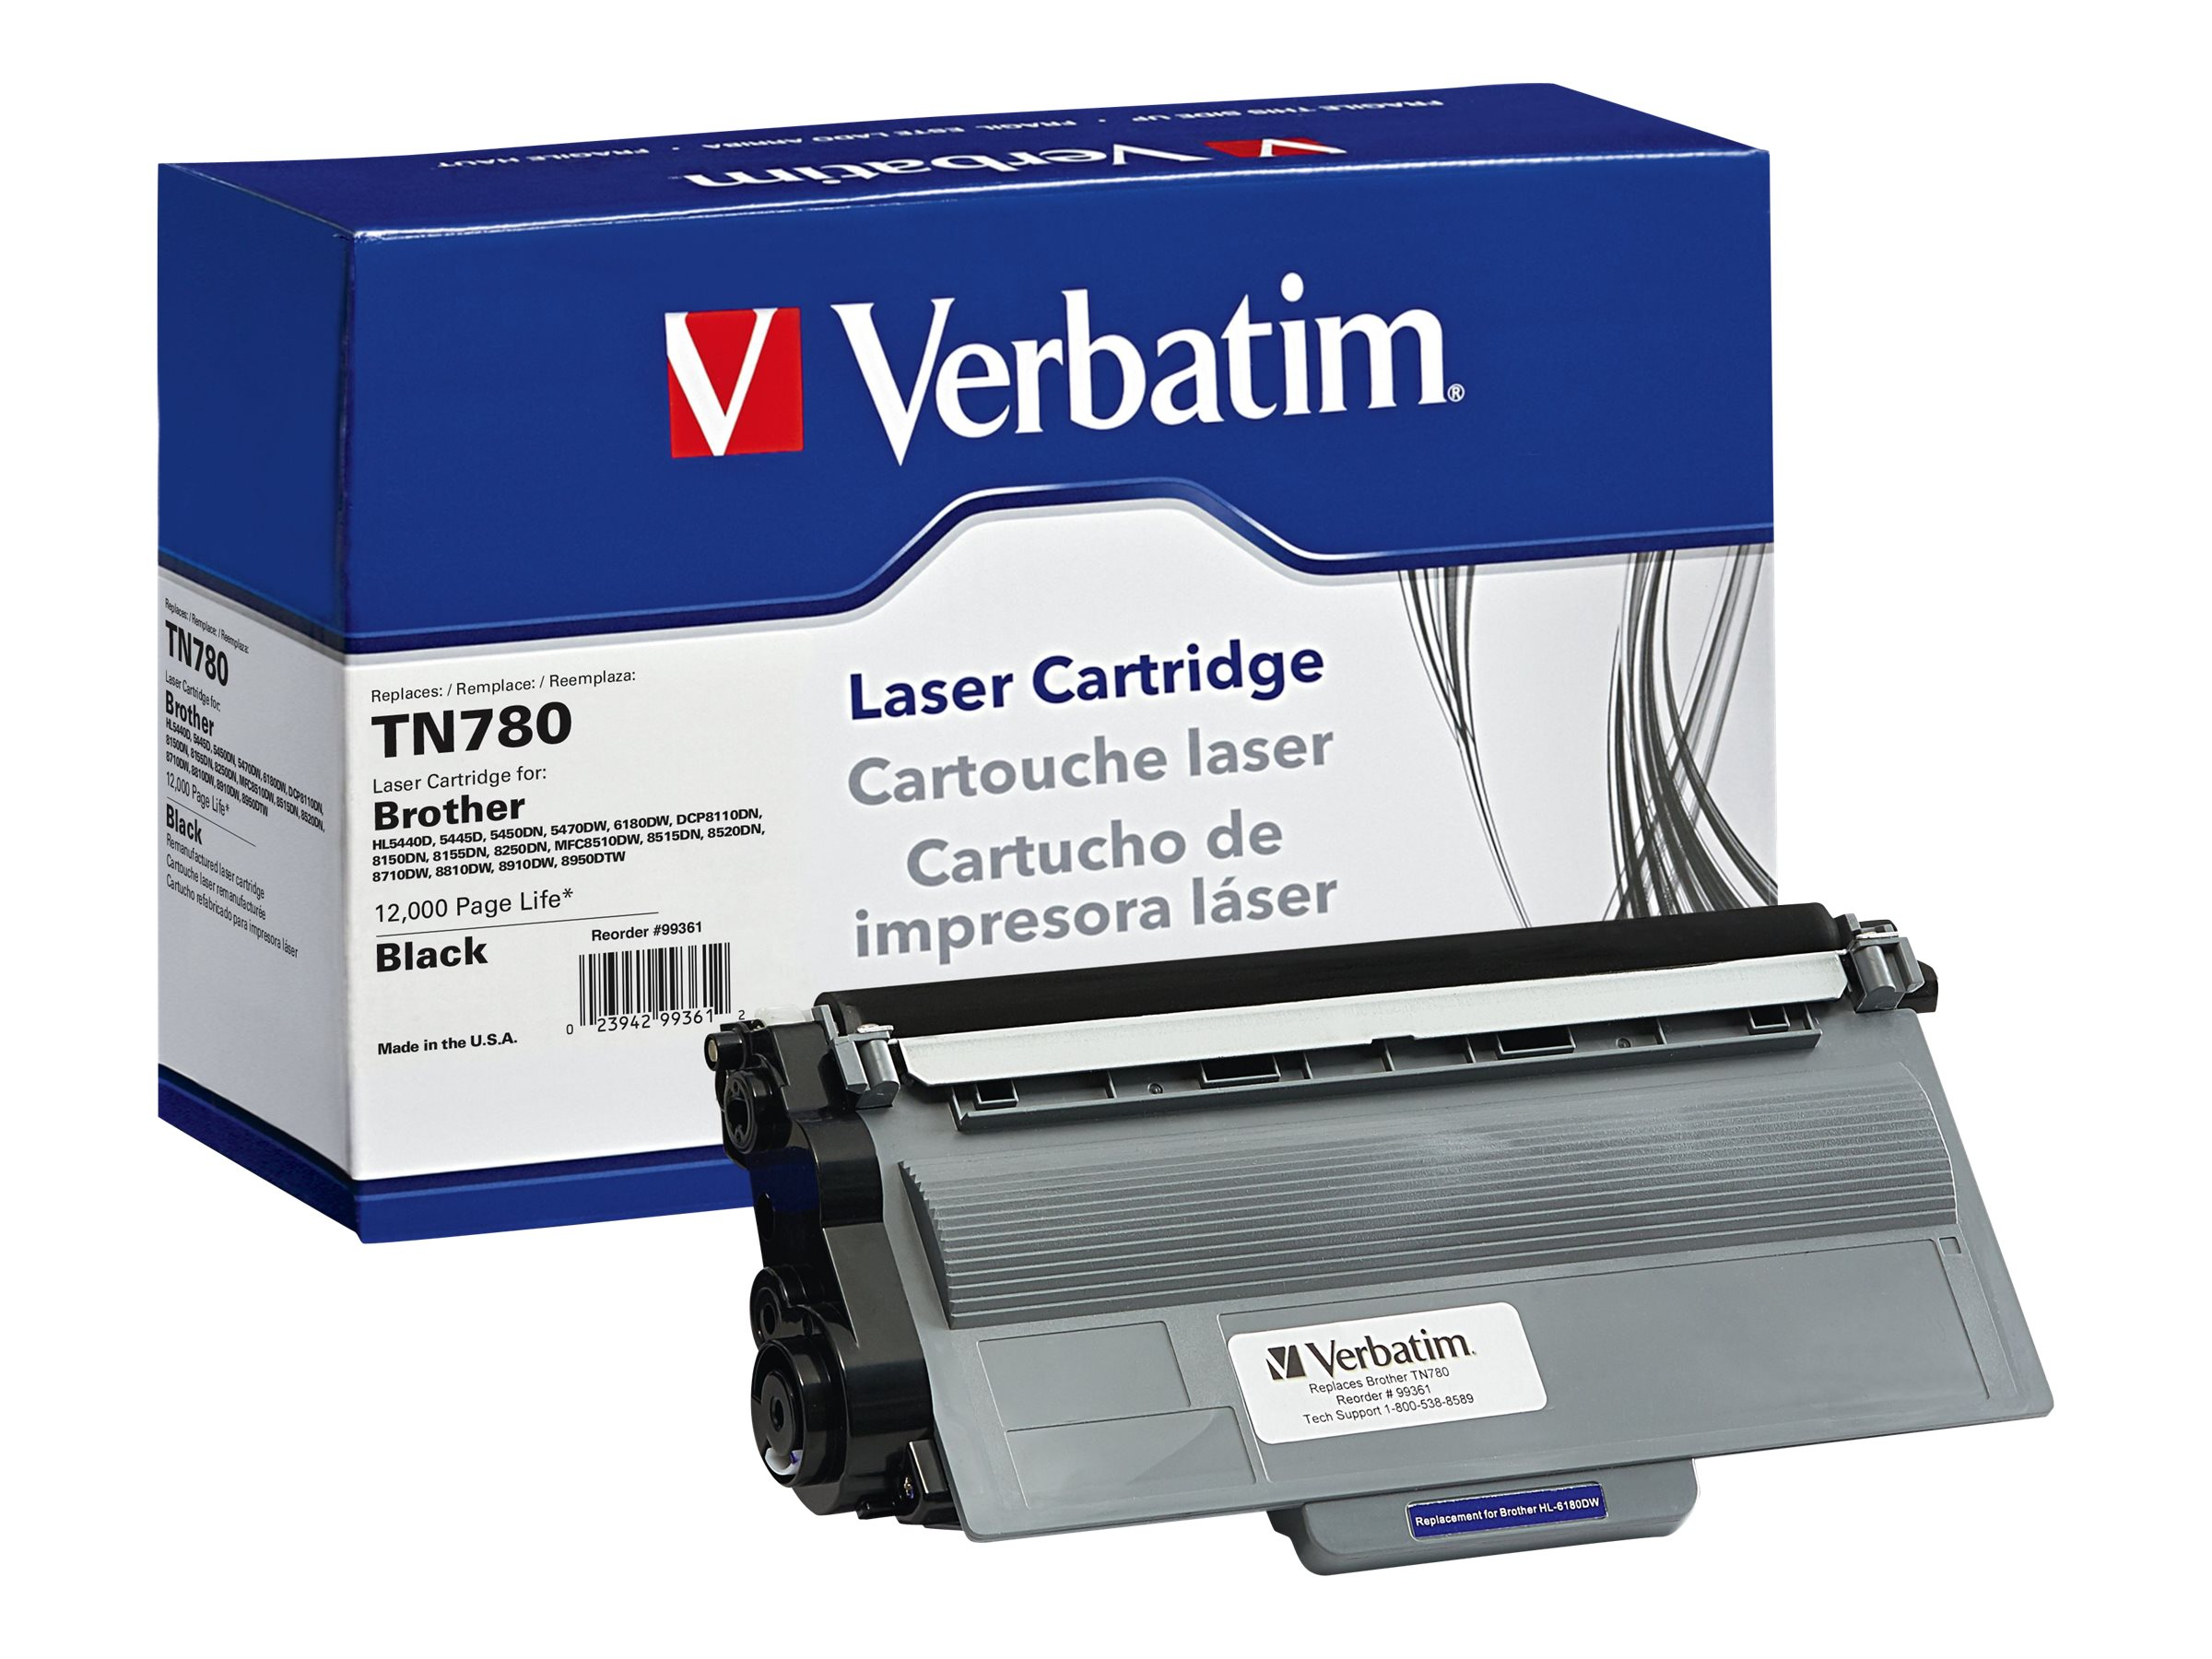 Verbatim TN780 Toner Cartridge for Brother